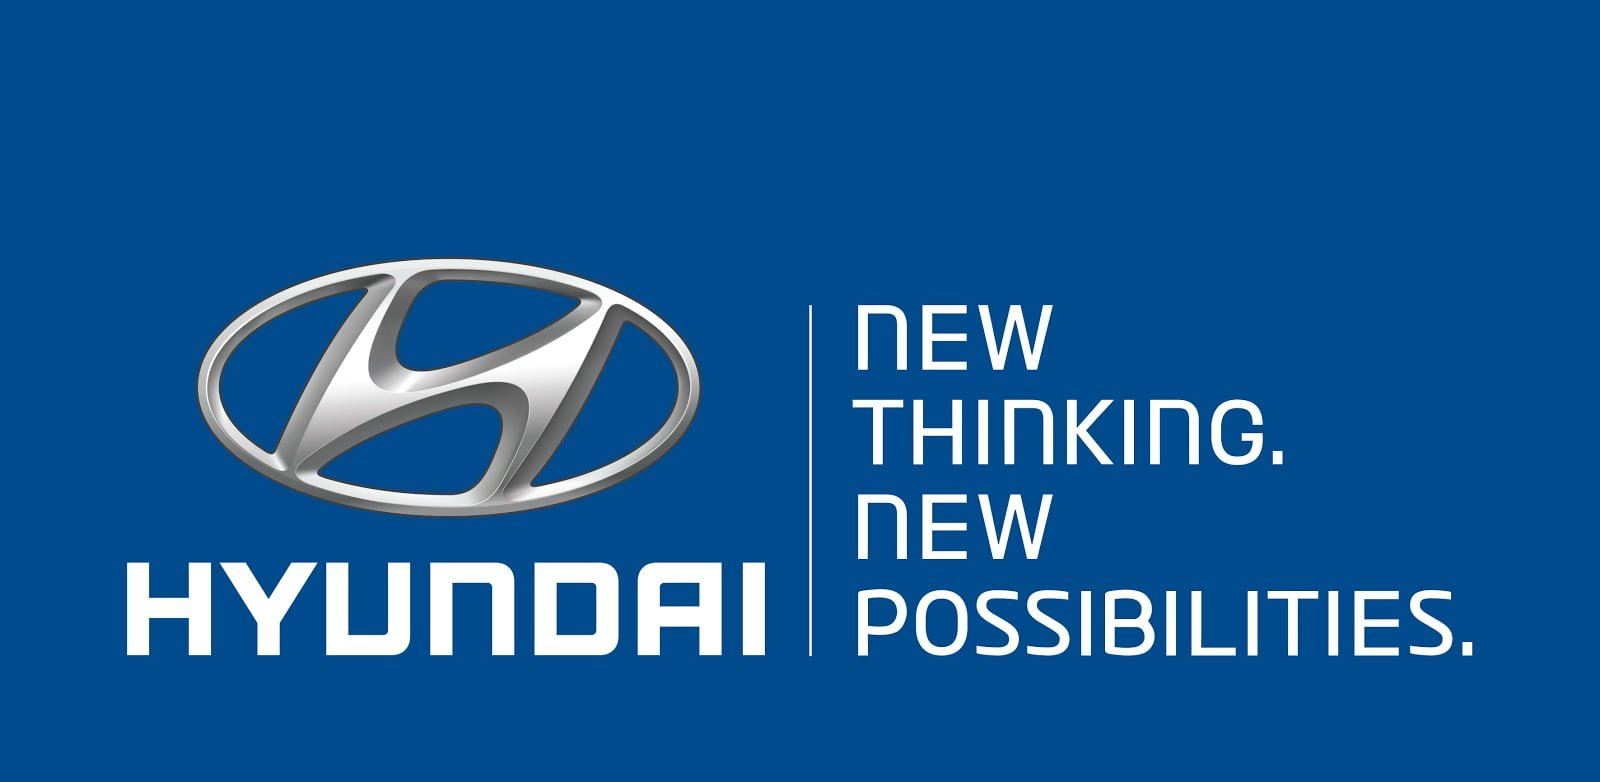 marketing hyudai Learn about working at hyundai engineering & construction co,ltd join linkedin today for free see who you know at hyundai engineering & construction co,ltd, leverage your professional network, and get hired.